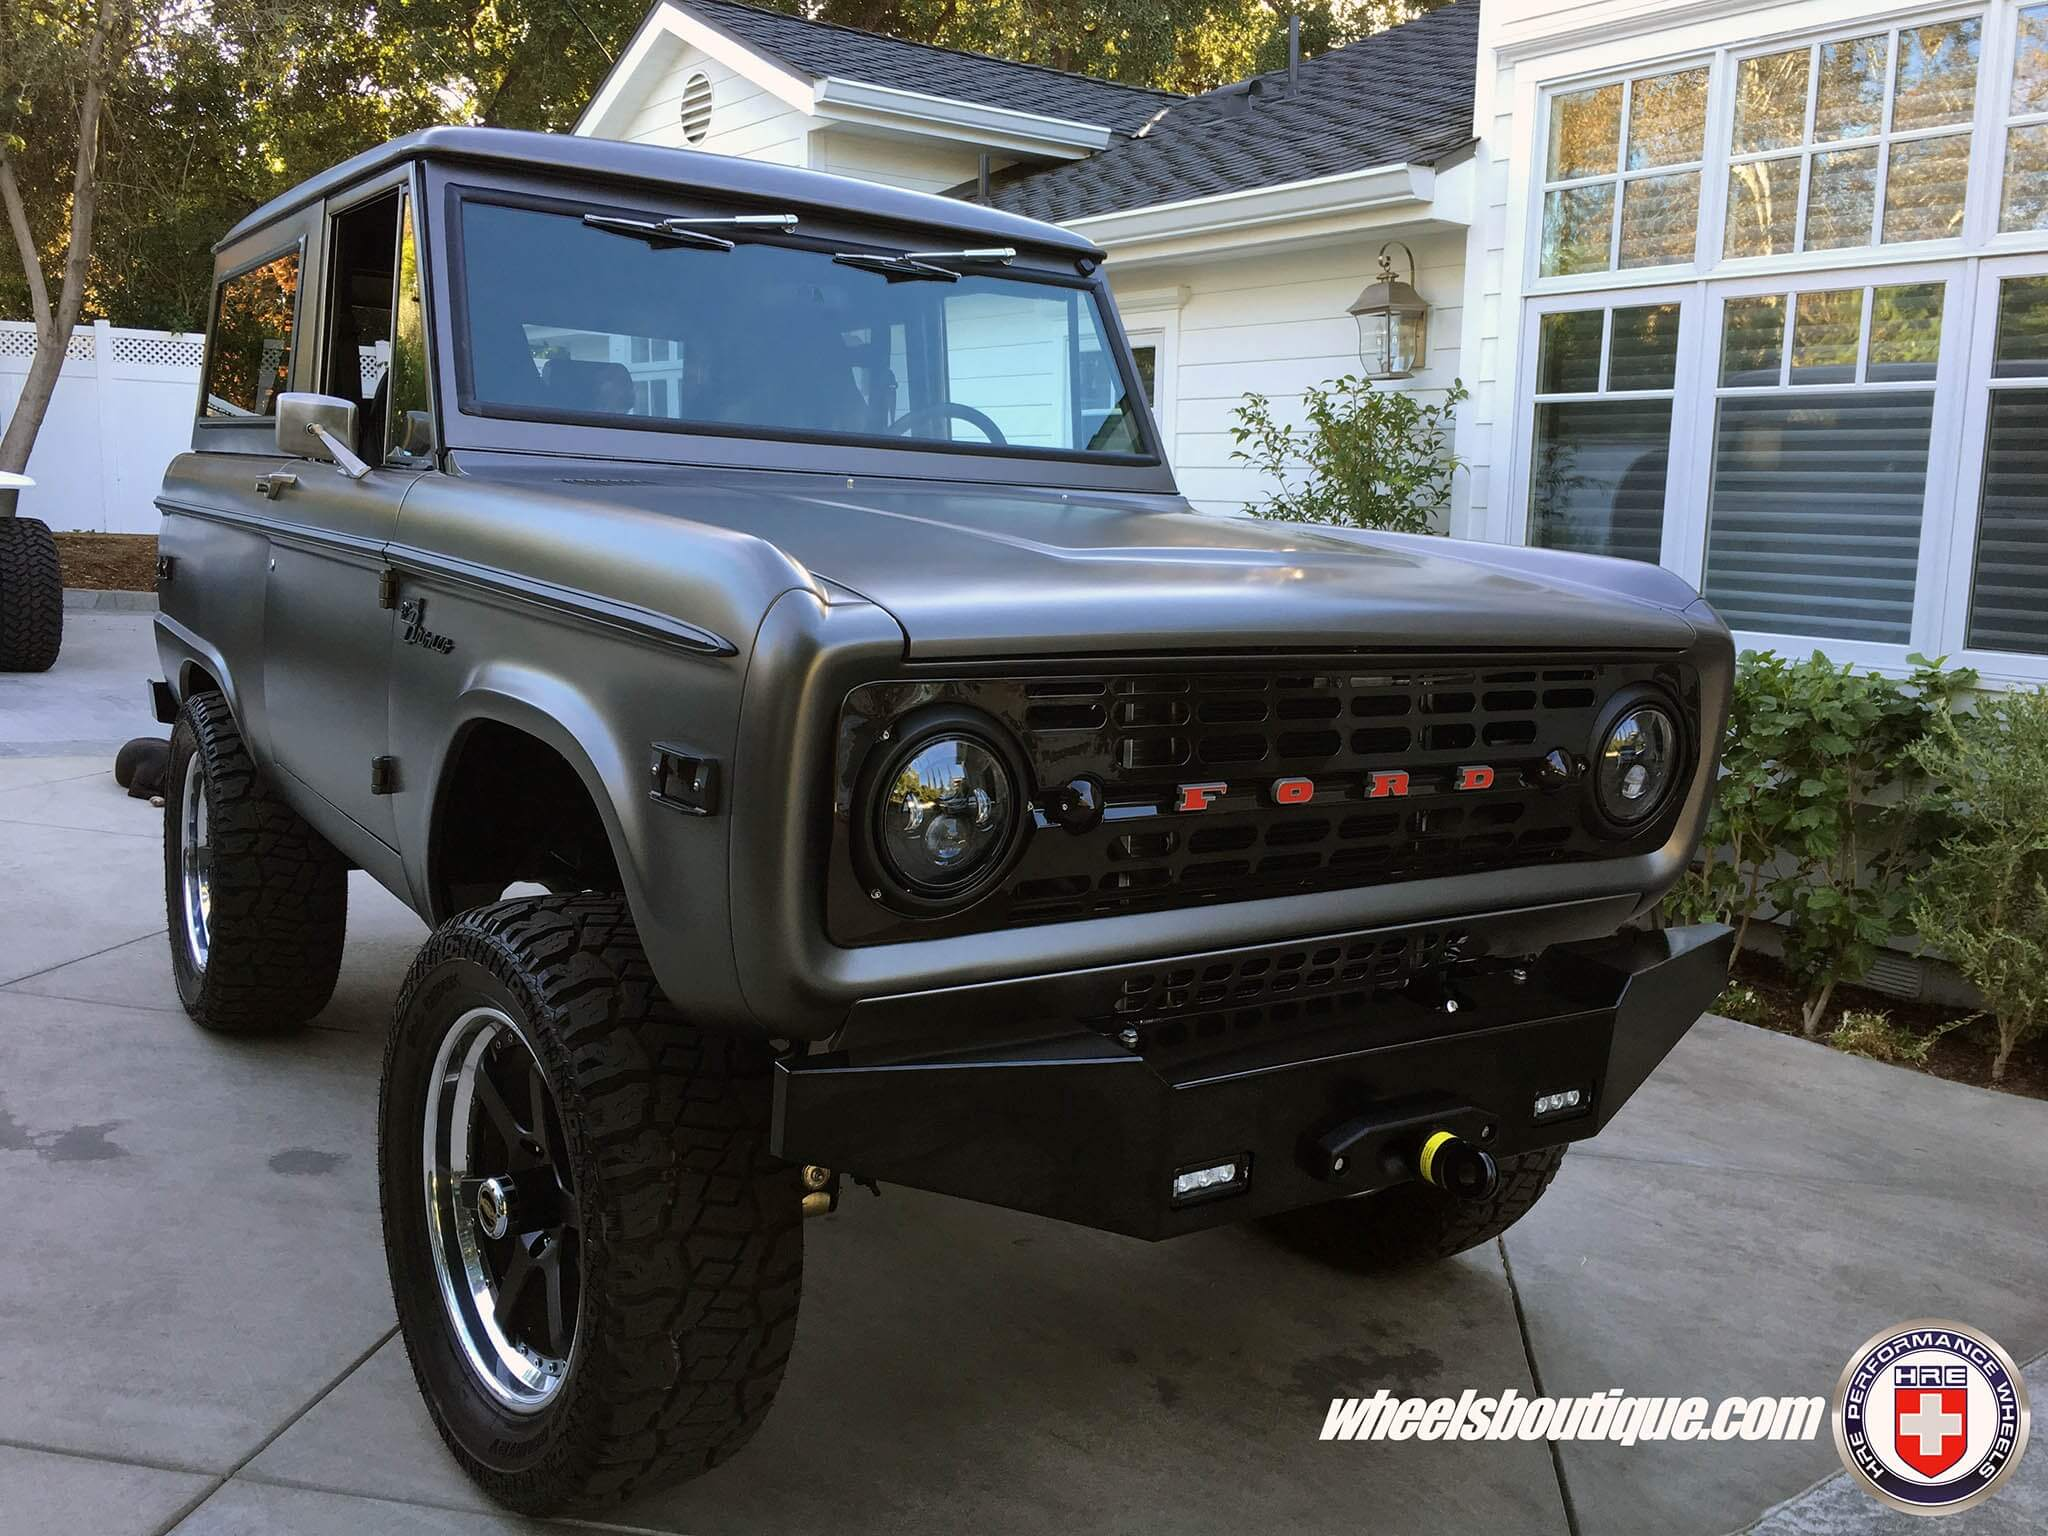 Ford Bronco With HRE C106 In Satin Black